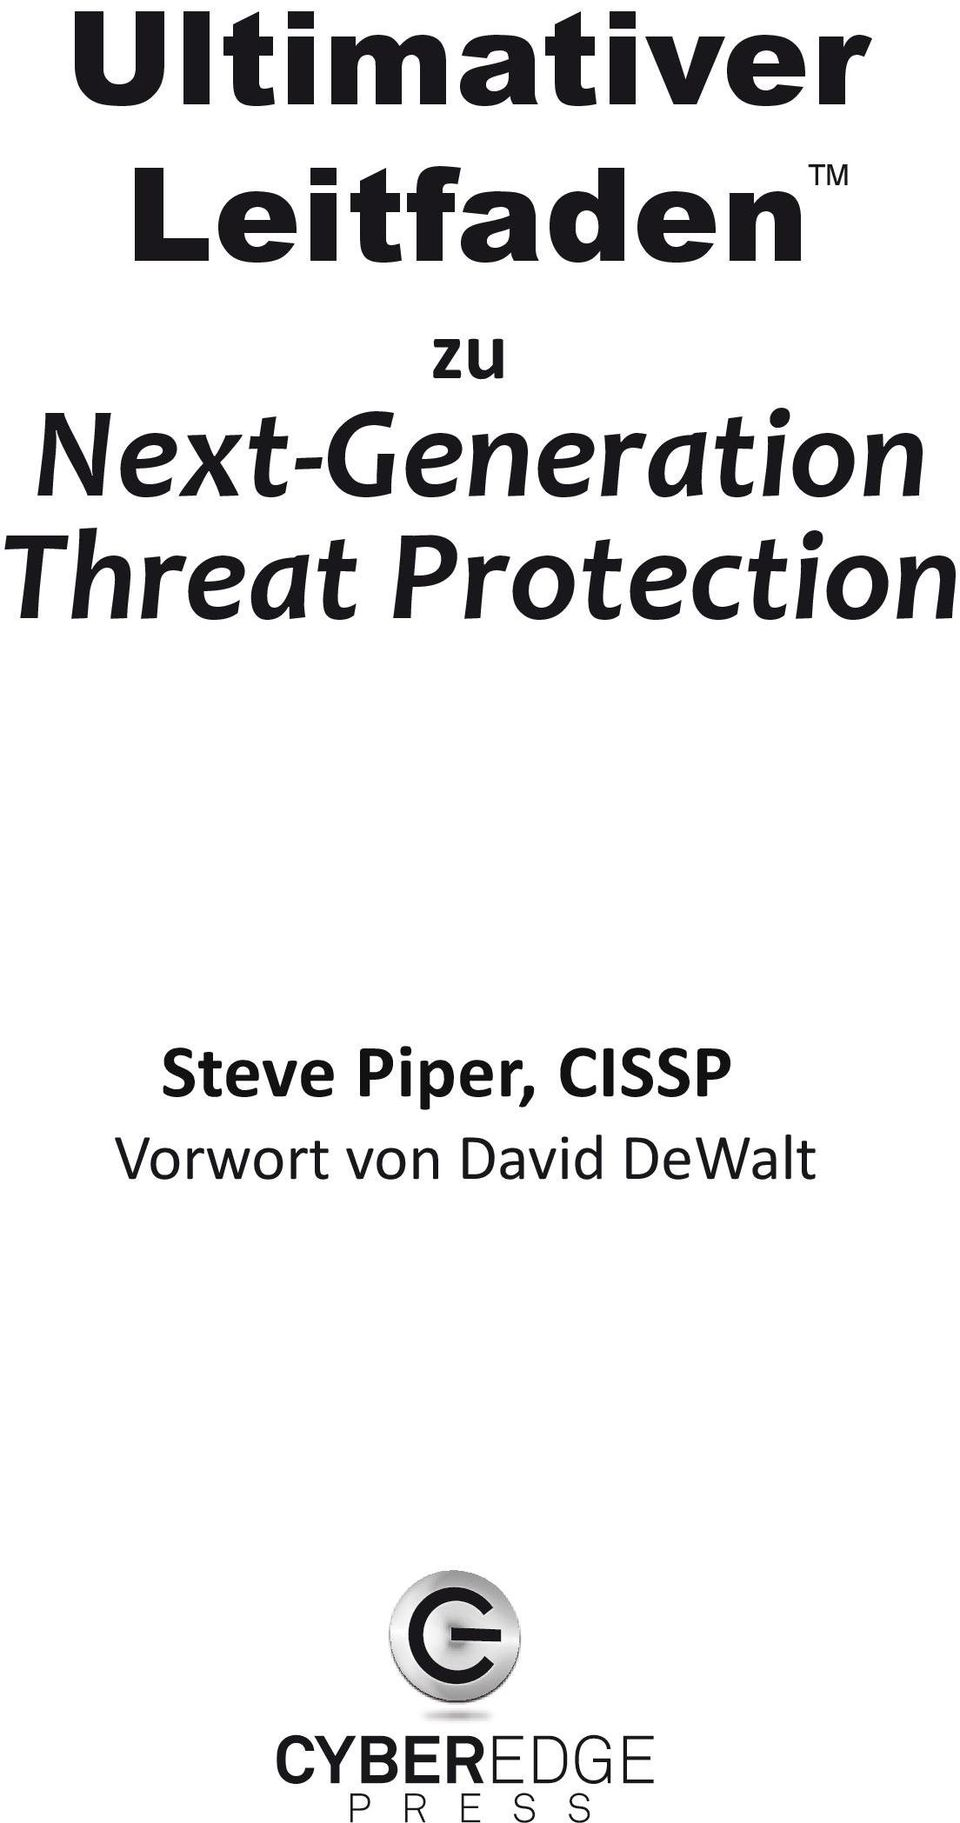 Protection Steve Piper,